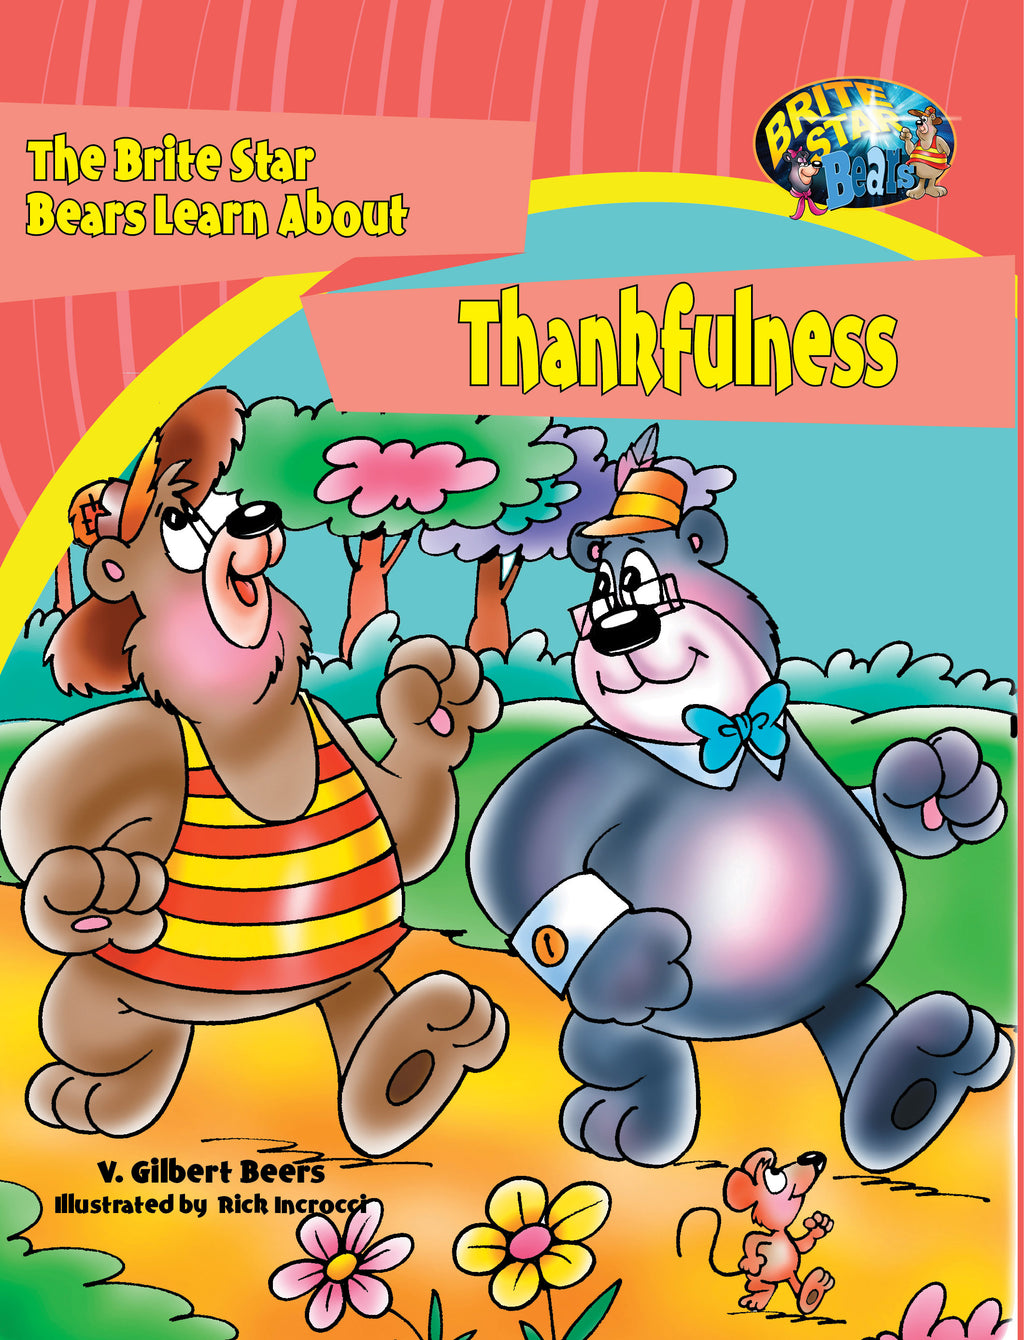 The Bears of Brite Star Learn About Thankfulness